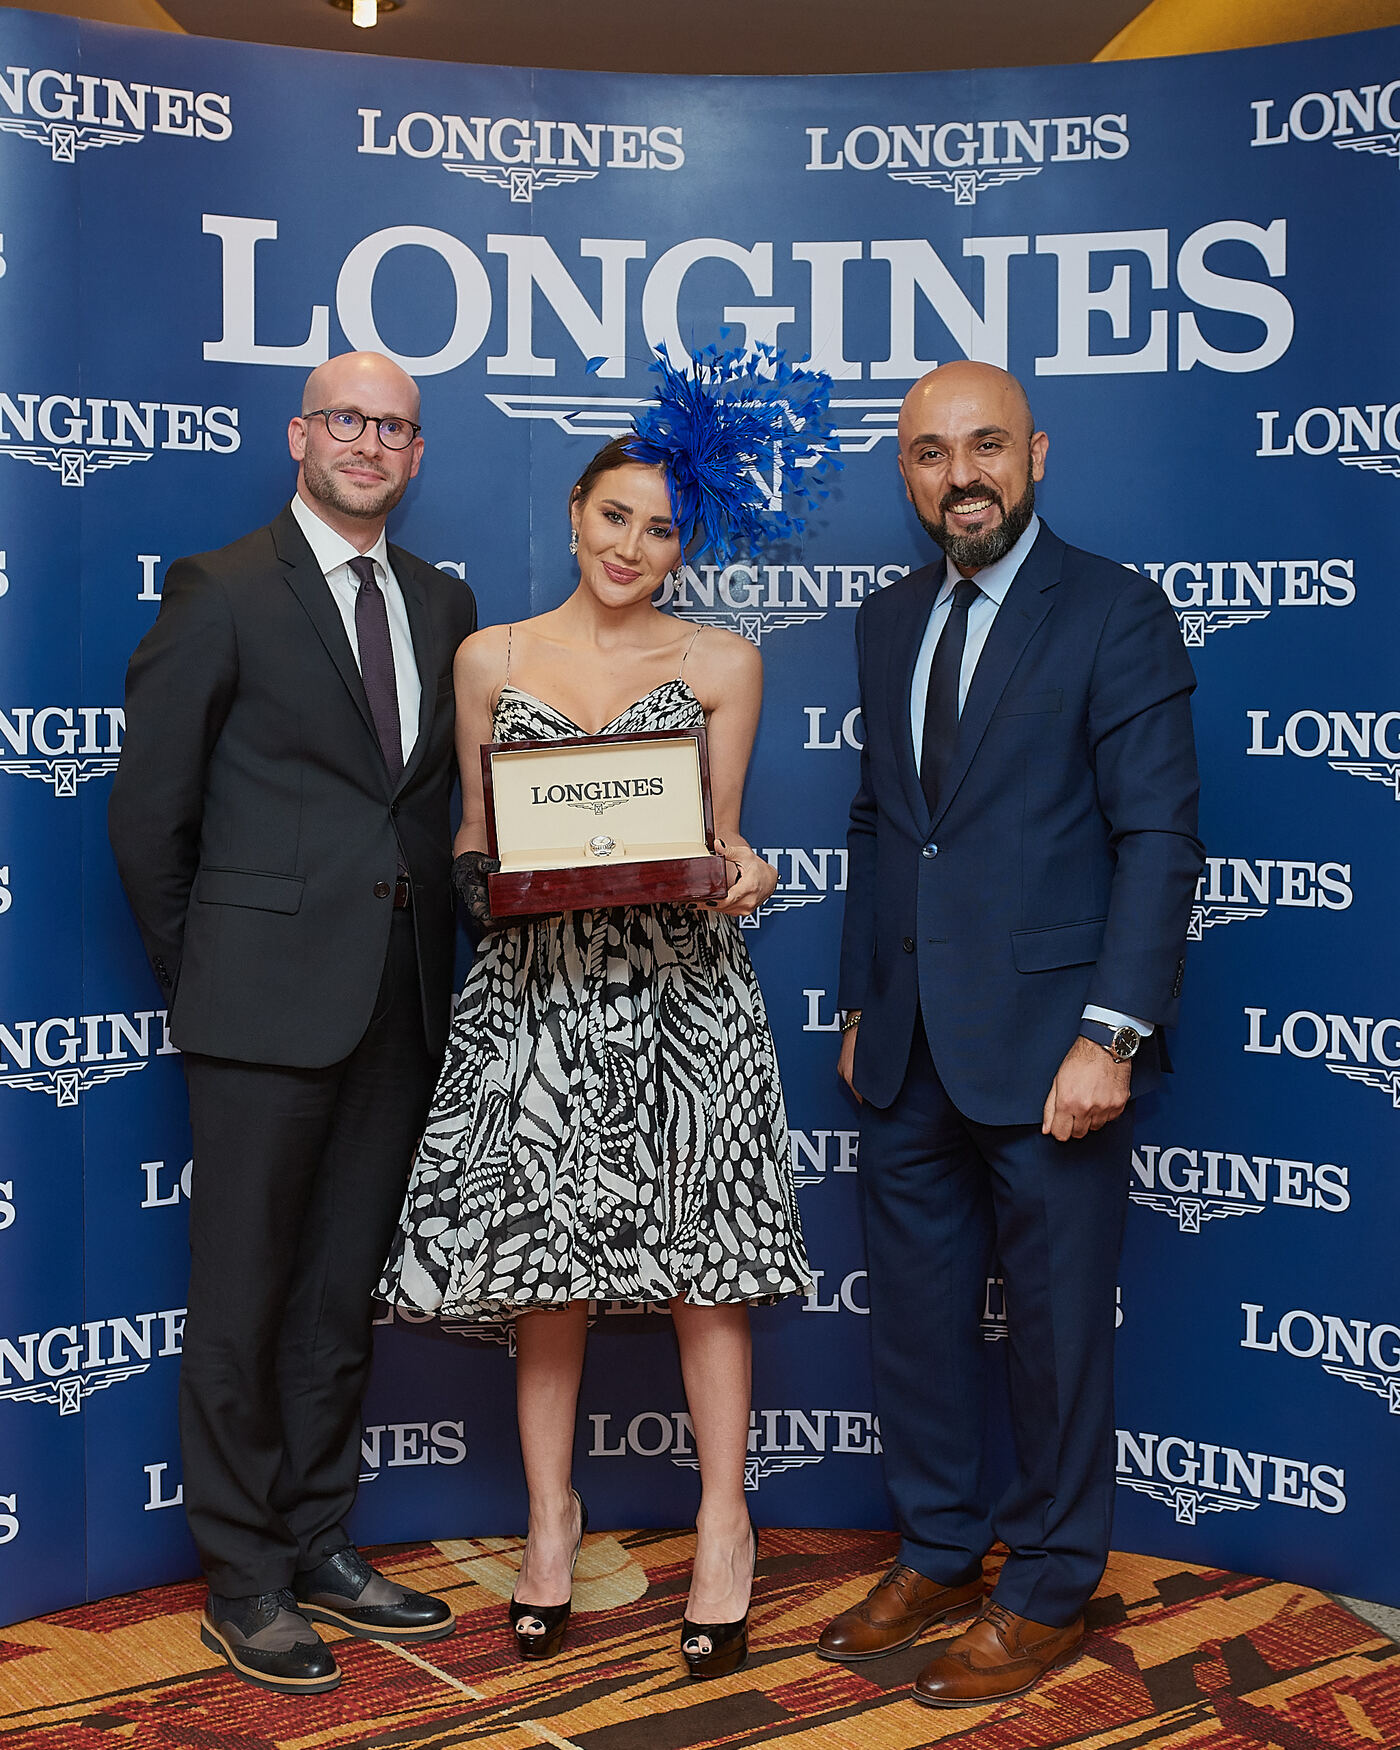 Longines Flat Racing Event: Swiss watch brand Longines honours the winners of  the Longines Dubai Sheema Classic 6